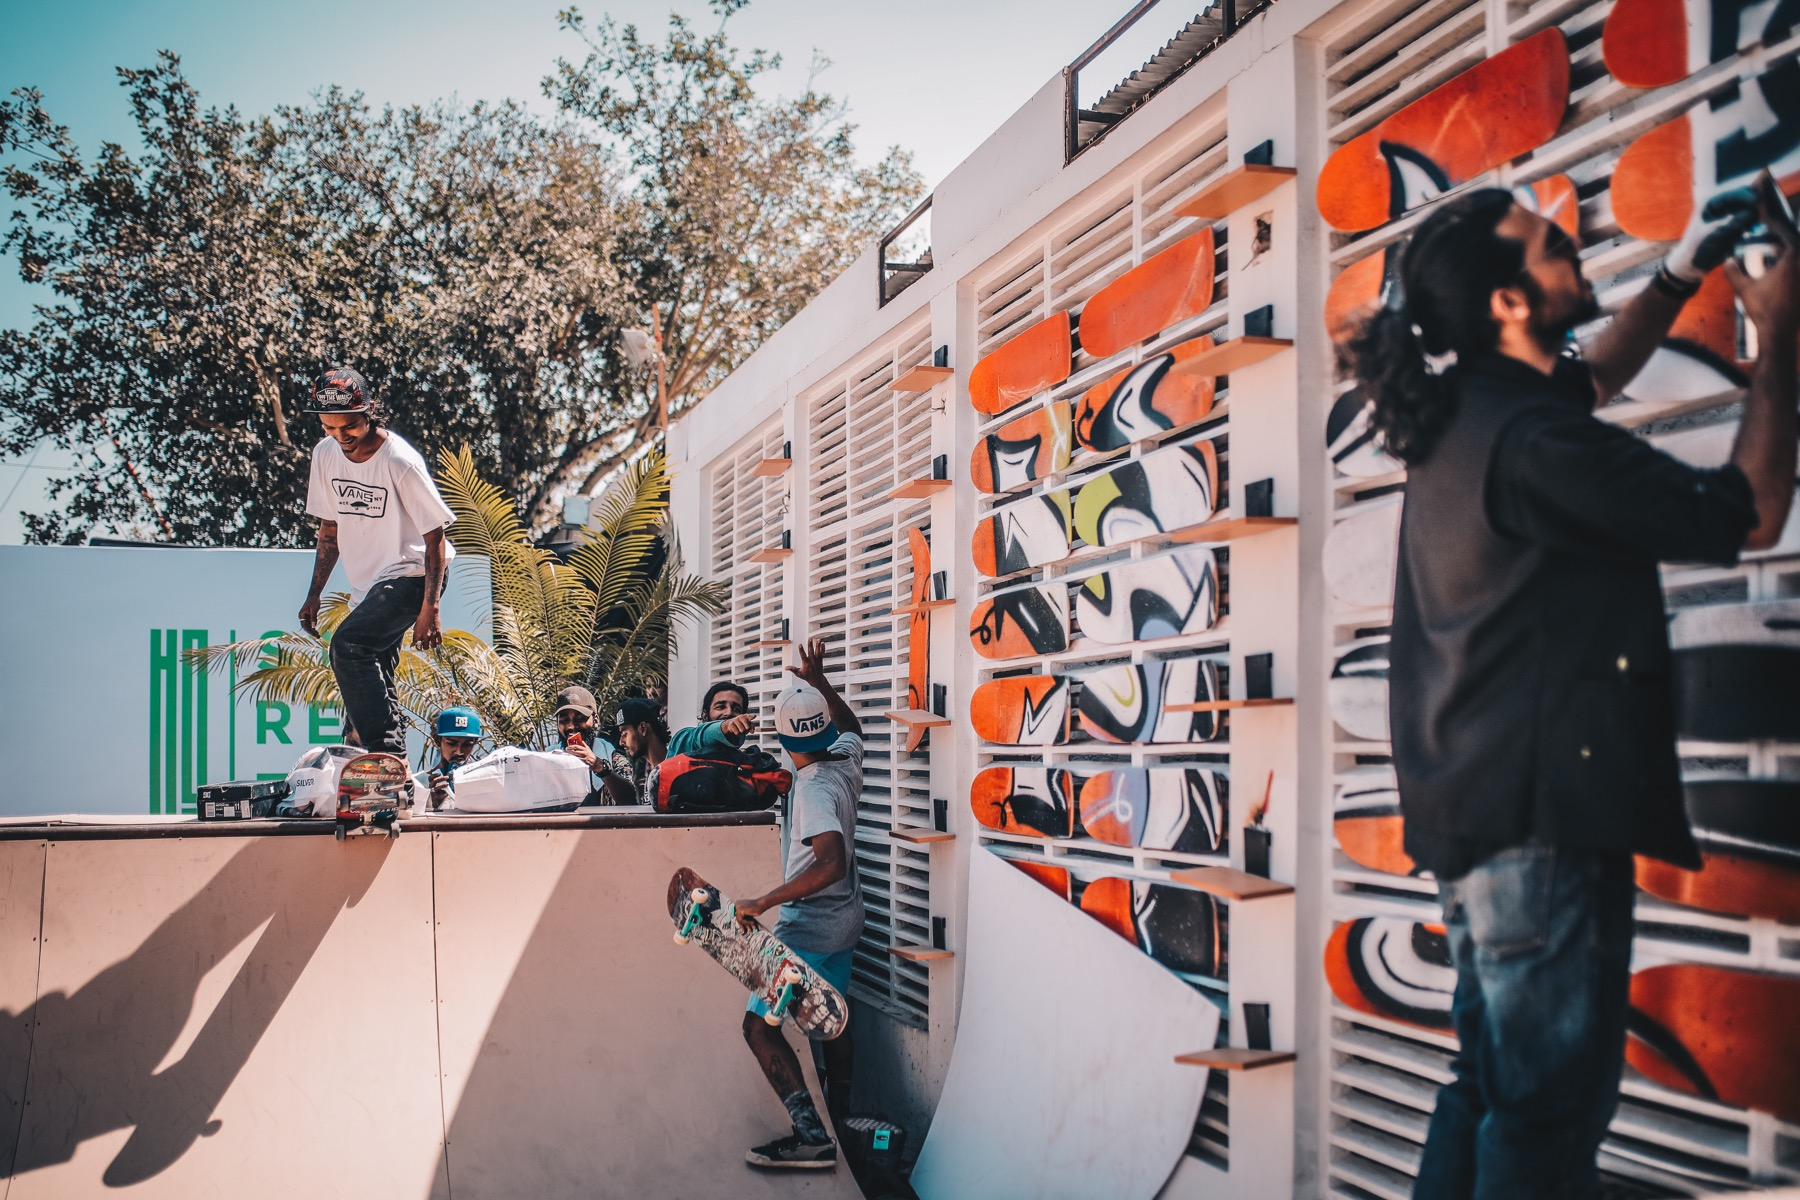 Homegrown India presents HGStreet in Mumbai on March 18, 2018, a celebration of sneaker and street culture - DC Arena brings BMX crews and skaters976A5408.jpg